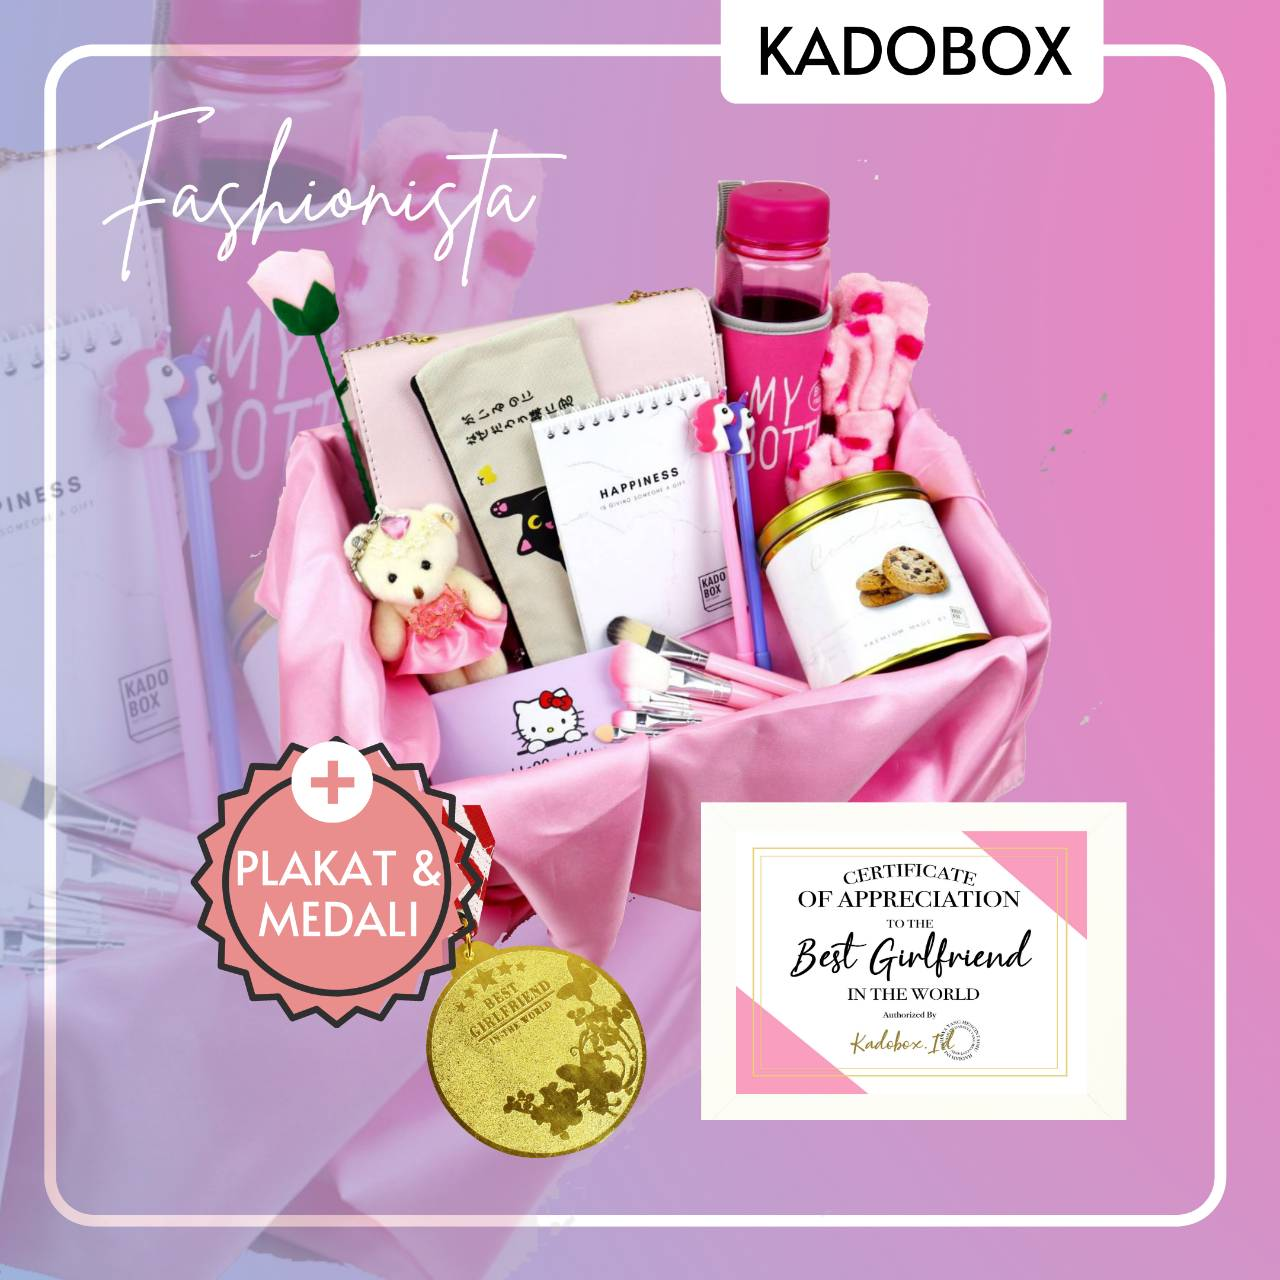 KADOBOX MEDALI PLAKAT FOR HER VIP